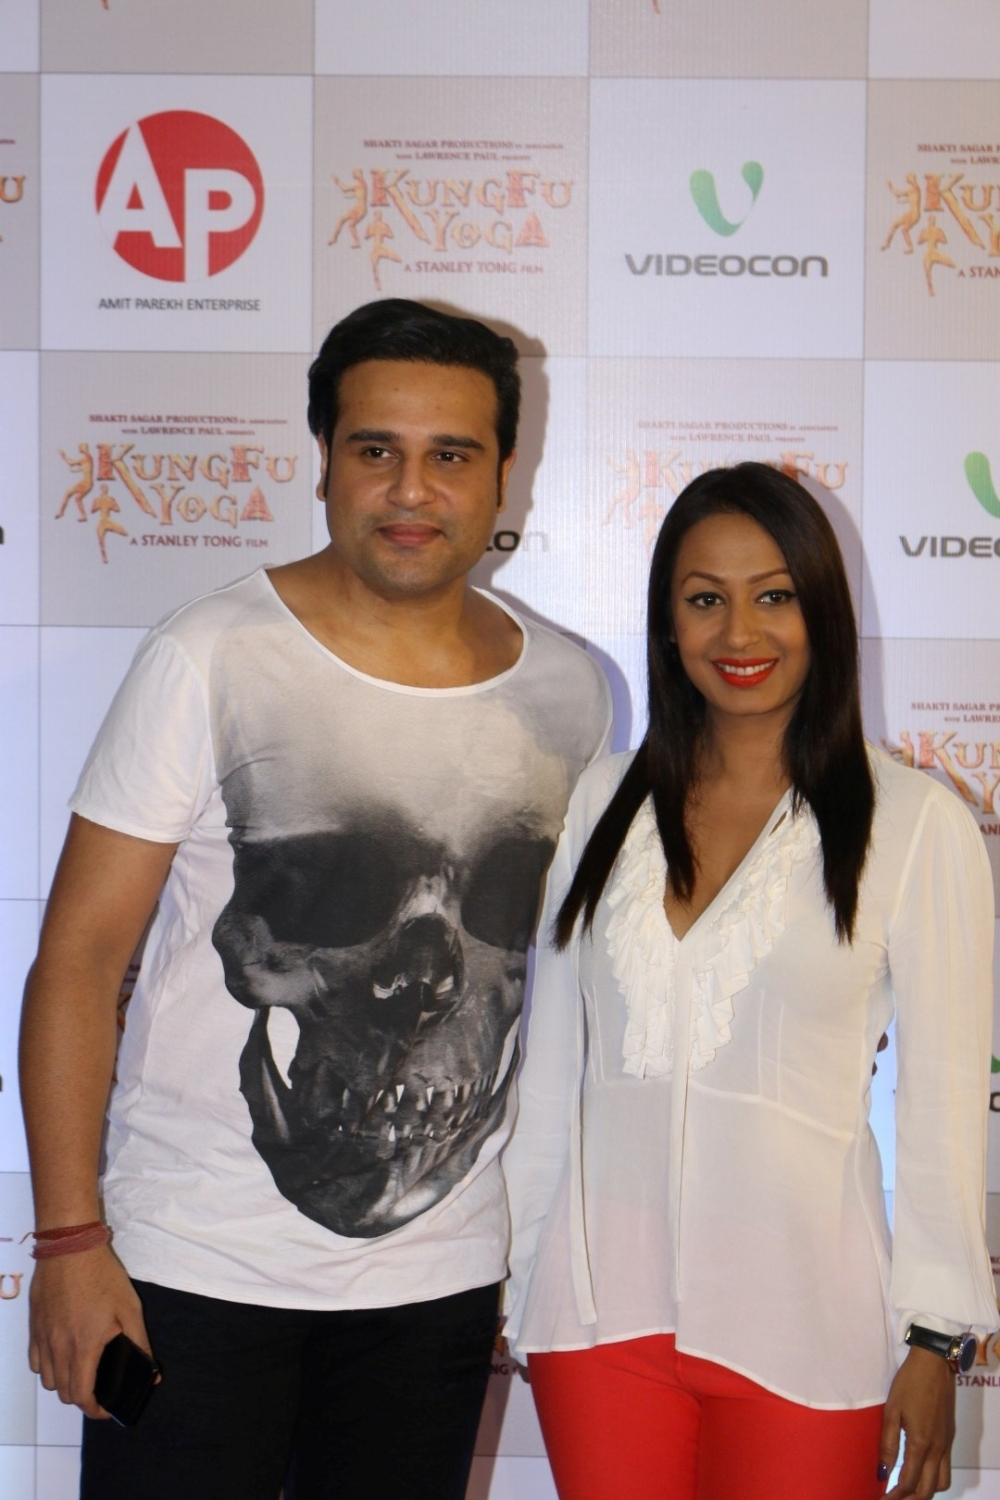 Mumbai: Actor Krishna Abhishek with his wife and actor Kashmira Shah during the screening of film Kung Fu Yoga in Mumbai on Feb 2, 2017. (Photo: IANS)